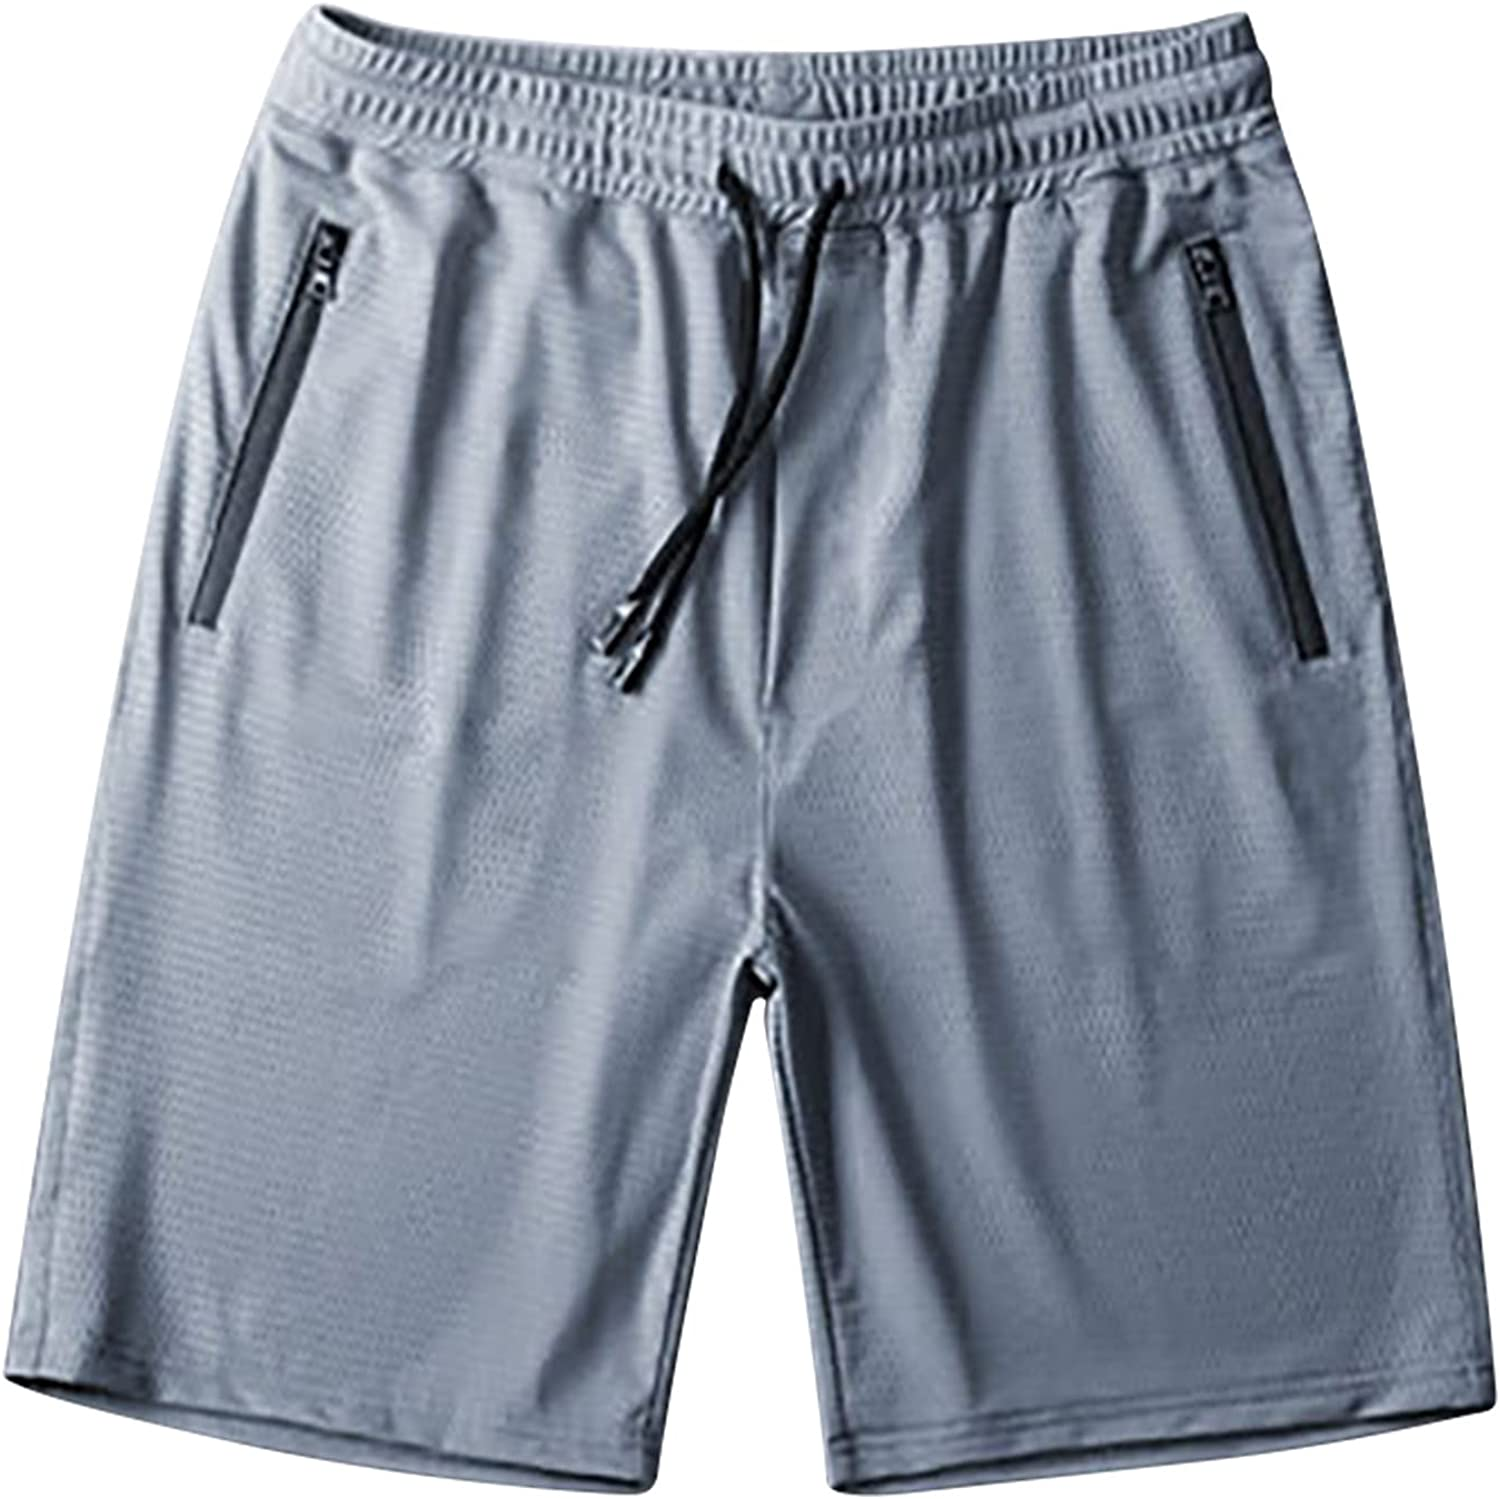 Men's Workout Running Shorts Sports Fitness Gym Training Quick Dry Athletic Performance Shorts with Zip Pockets